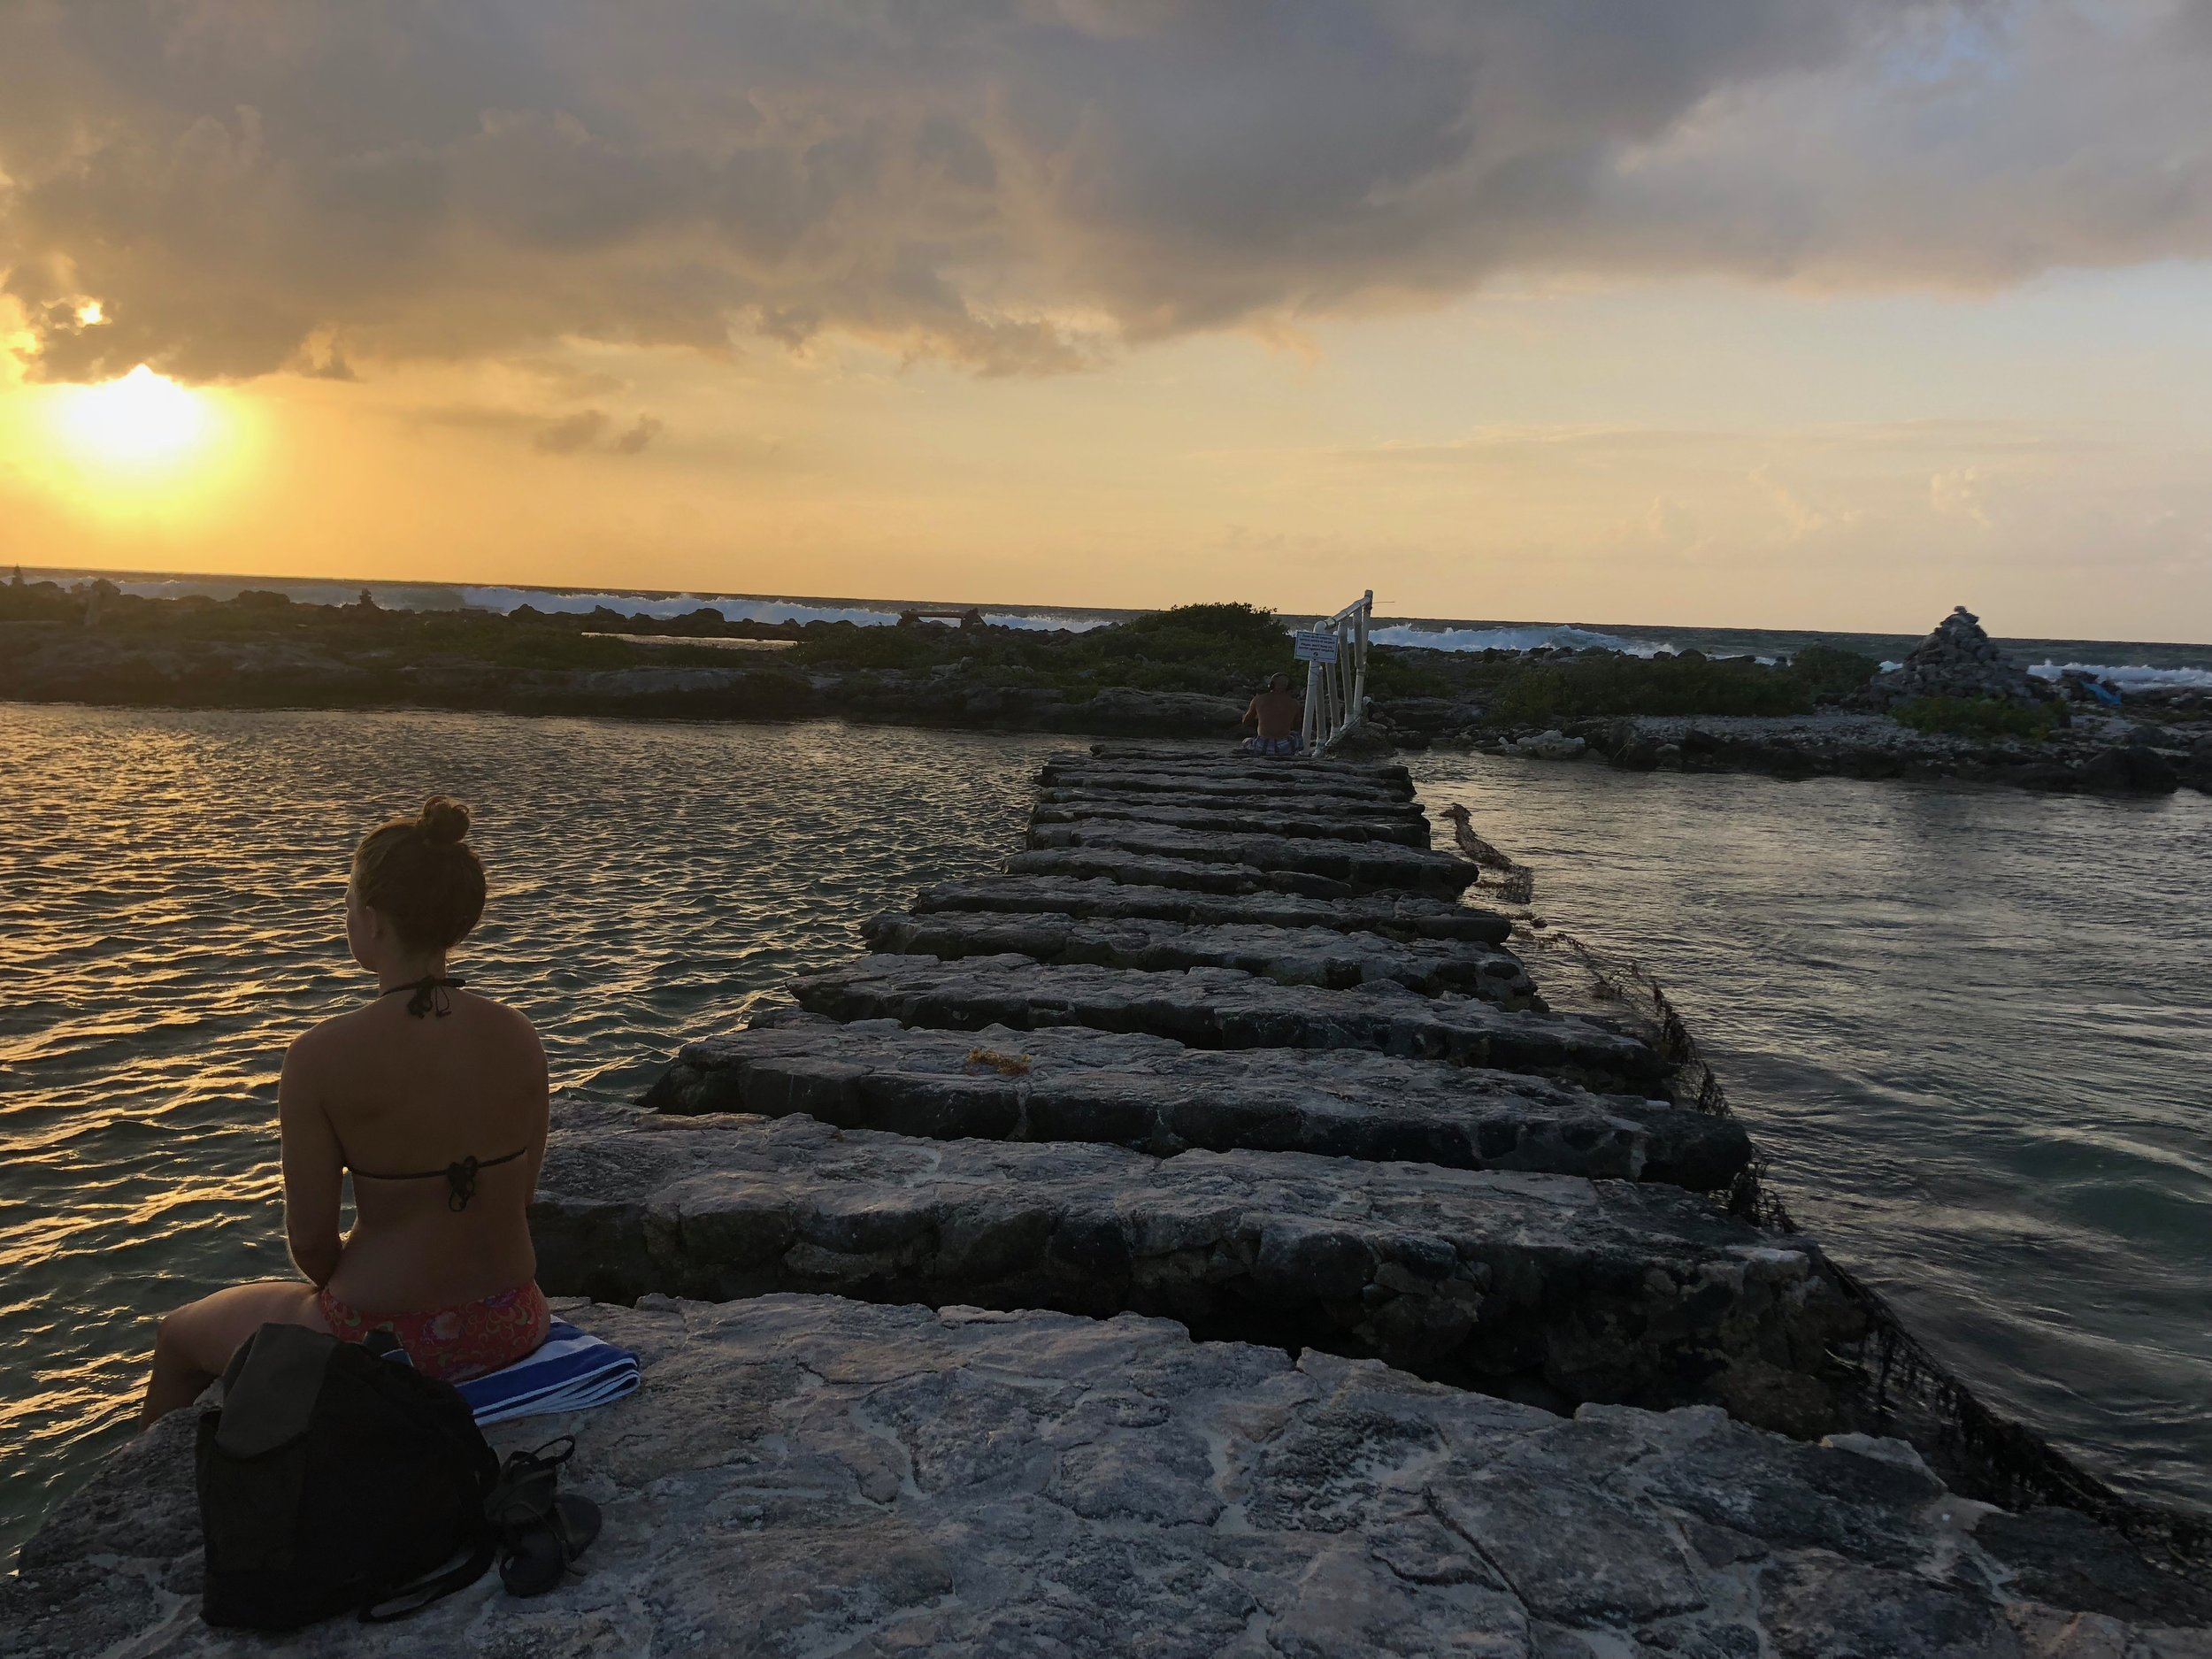 Reconnecting with natural light can help get us in sync with our natural circadian rhythm. This is my friend, Gina, soaking in the sunrise.